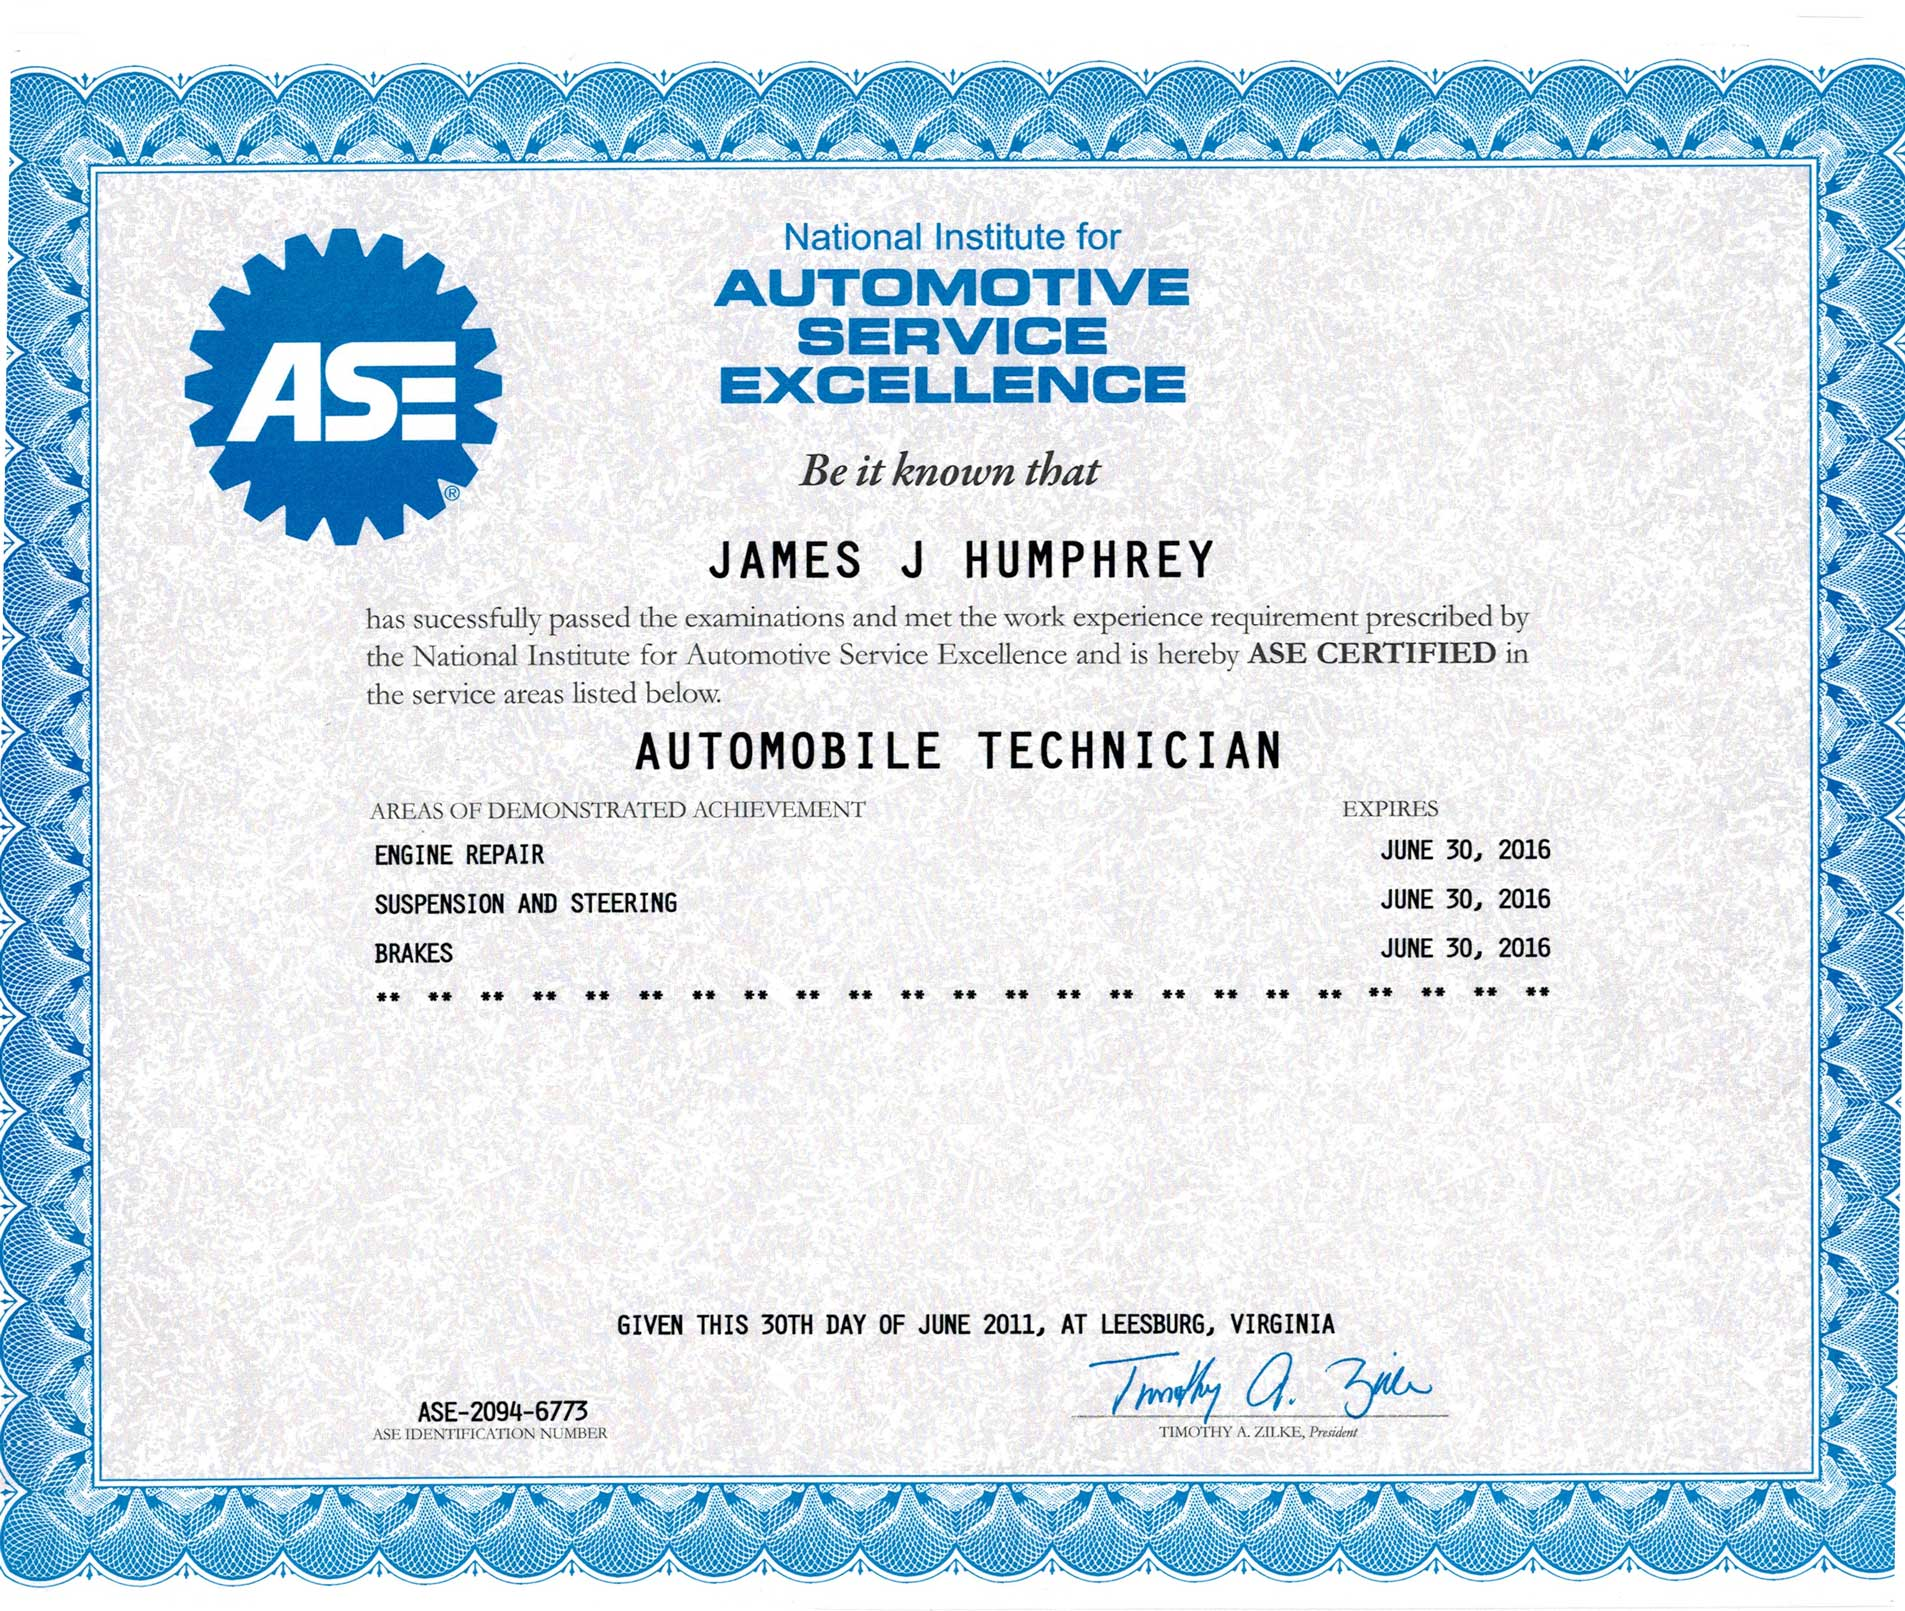 Jim Humphery ASE Certification | Weber Automotive